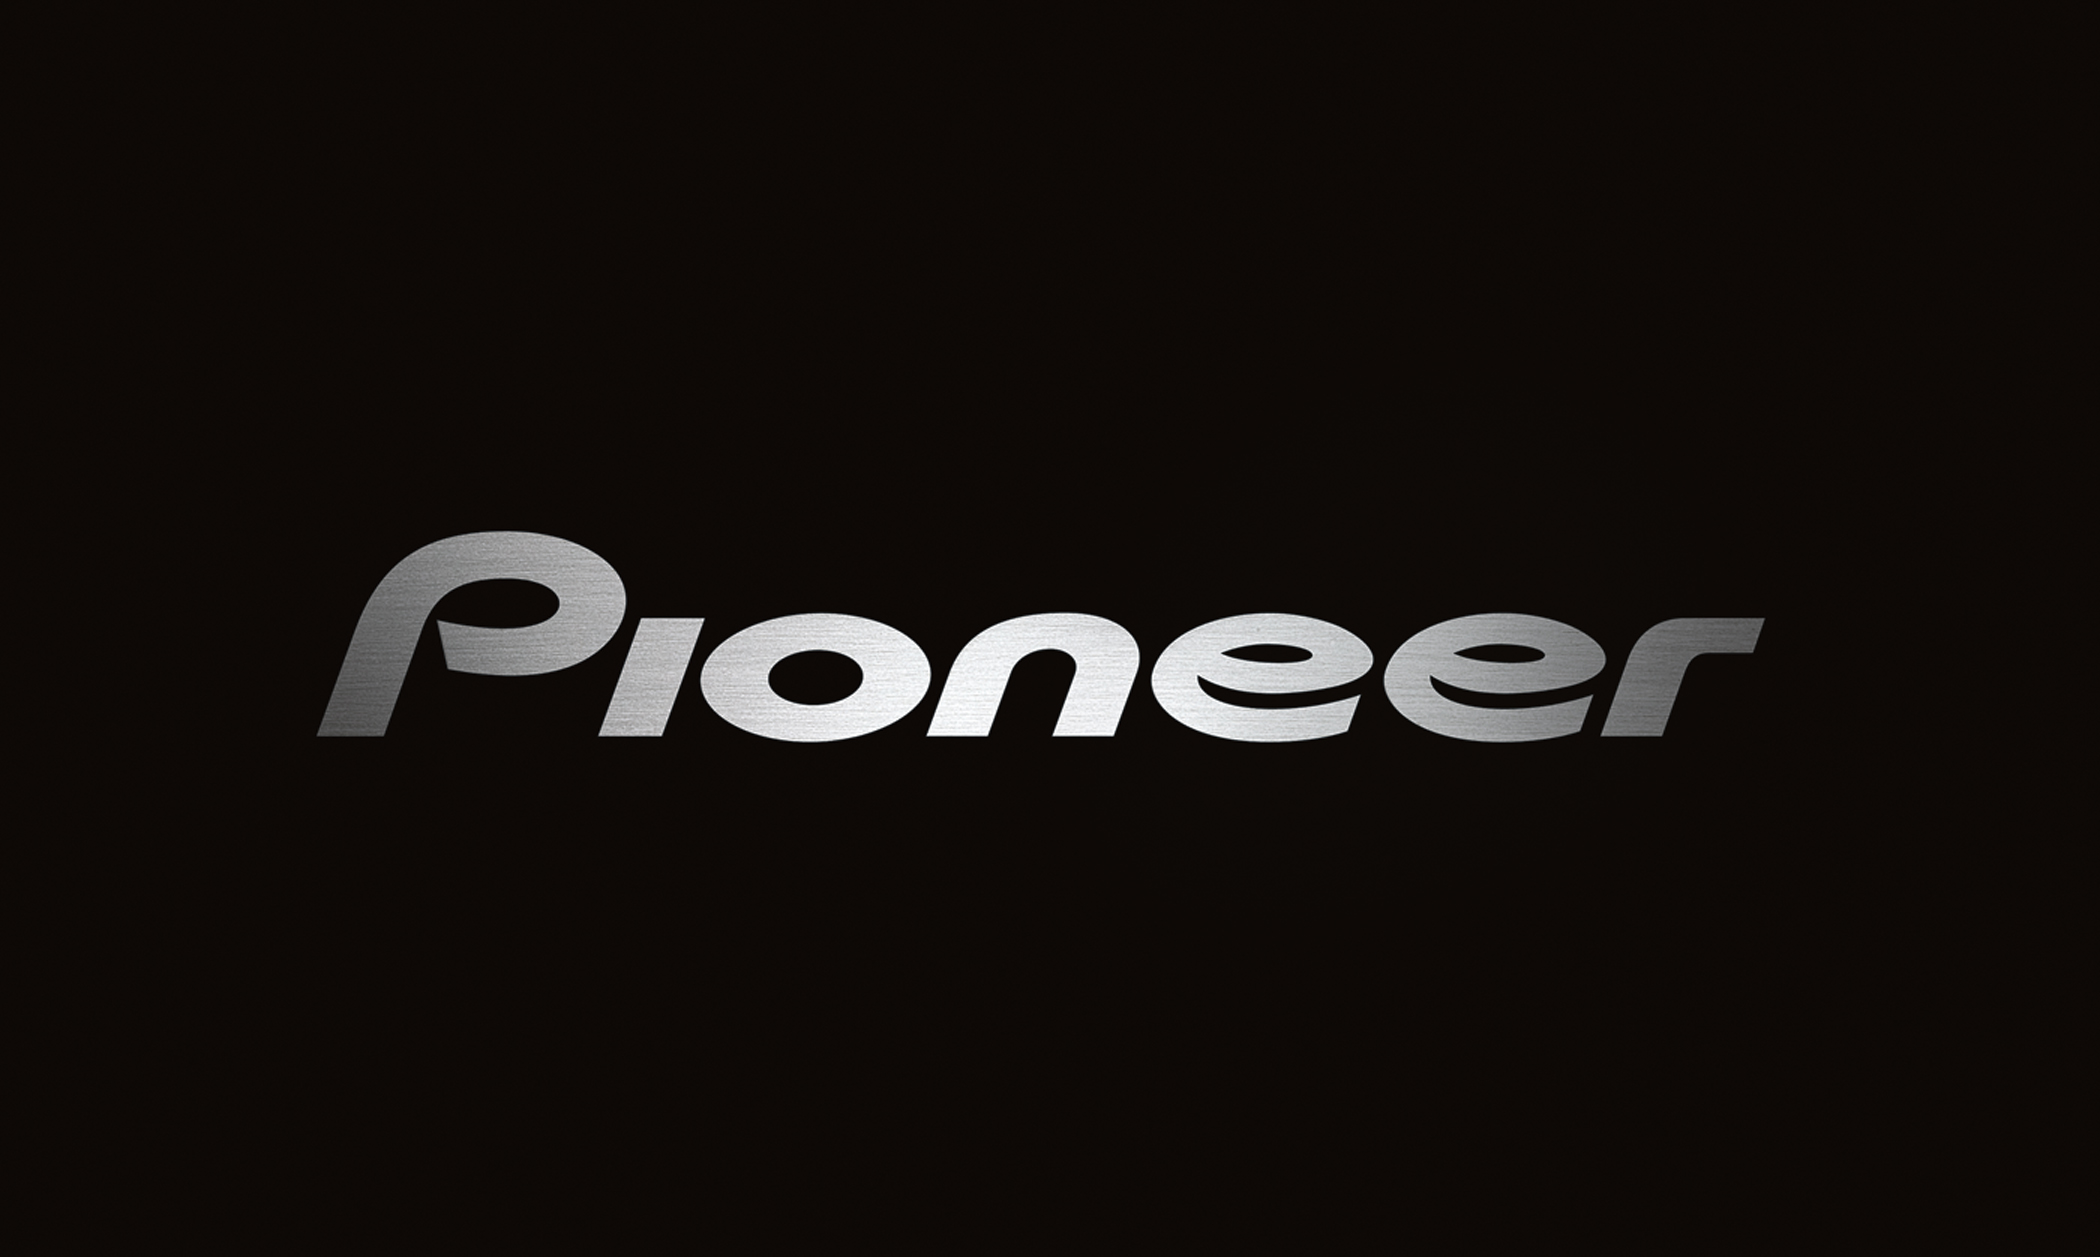 Pioneer Logo Wallpaper